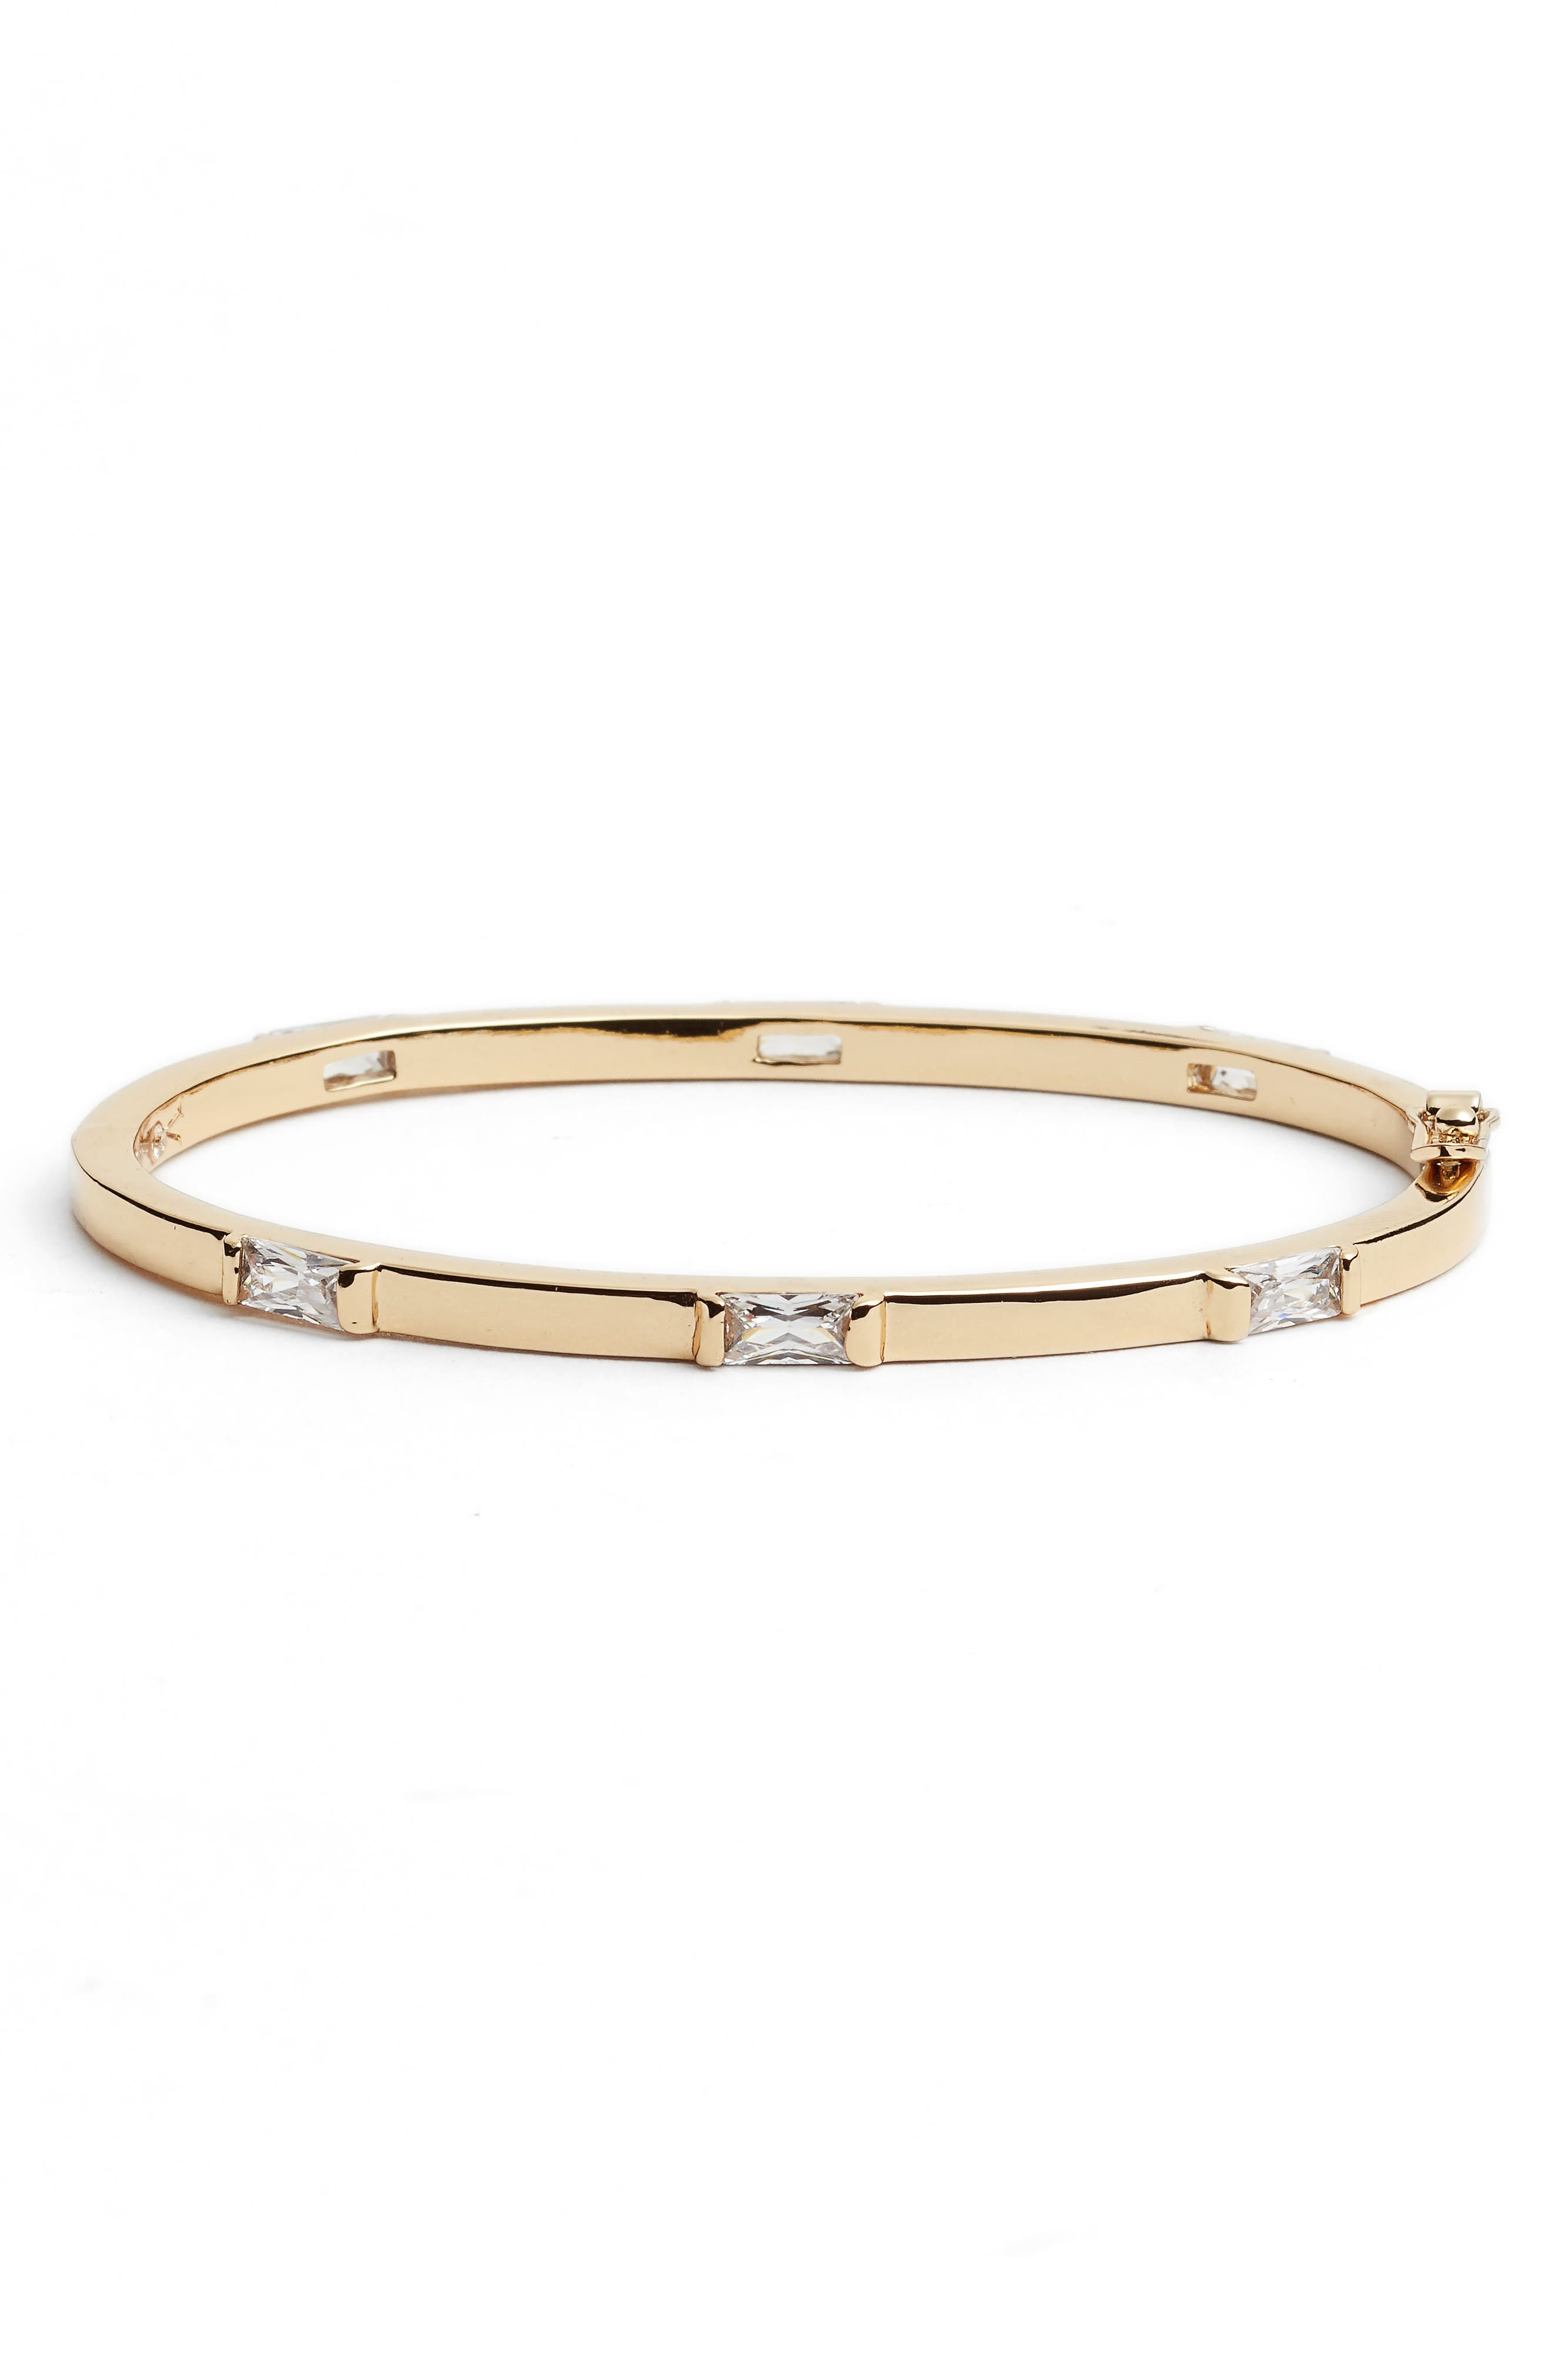 Step Cut Crystal Horizontal Station Bracelet,                             Main thumbnail 1, color,                             Gold